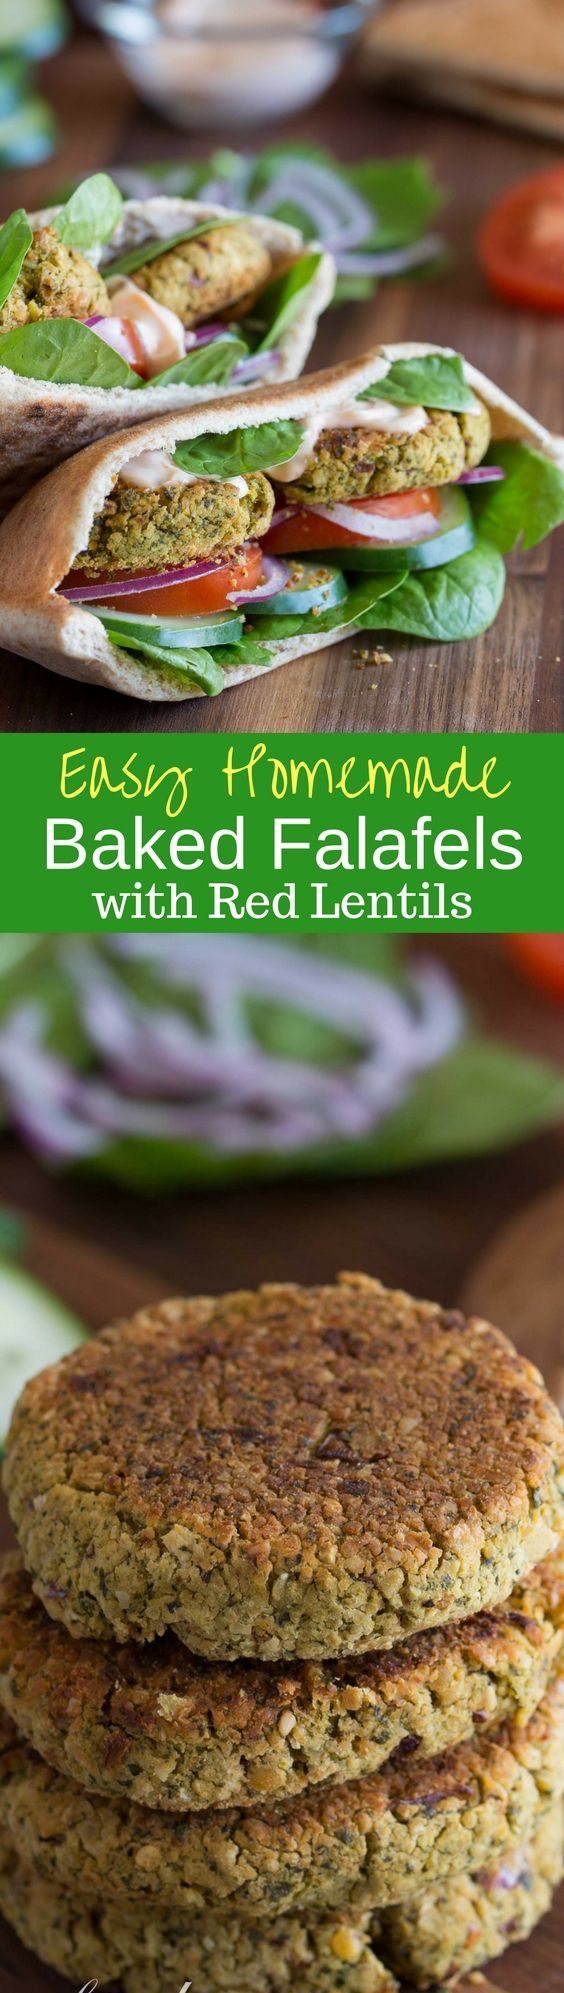 Blue apron falafel - Baked Falafels With Red Lentils A Hearty Healthy Meatless Grain And Bean Burger Seasoned